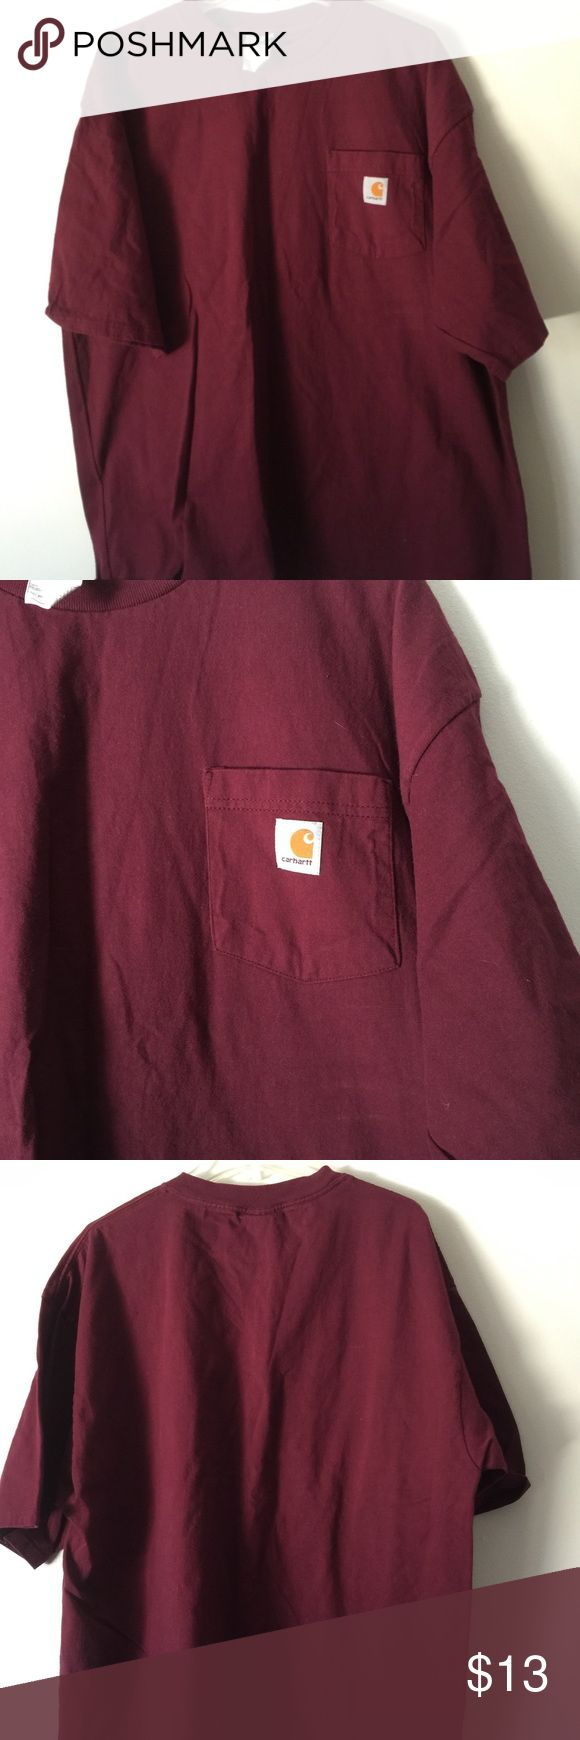 Carhartt short sleeve crewneck T-shirt Carhartt short sleeve crewneck T-shirt. Heavyweight 100% cotton work shirt. In excellent condition. MAROON NOT RED Carhartt Shirts Tees - Short Sleeve